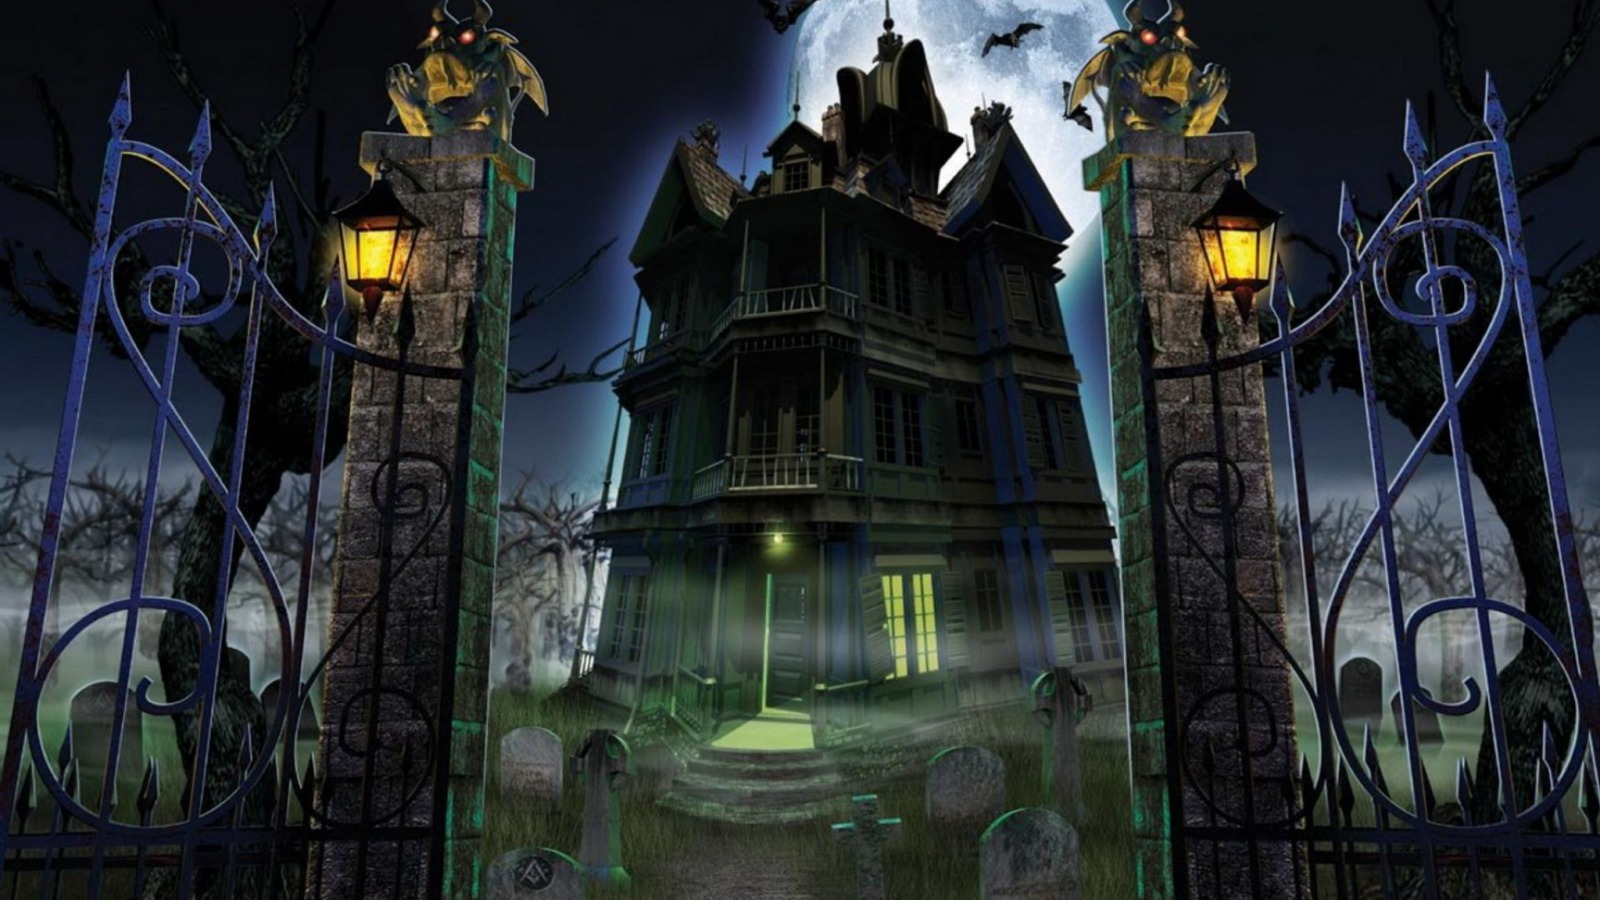 Urban Legend: Halloween Is Second U.S. Holiday In Retail Sales